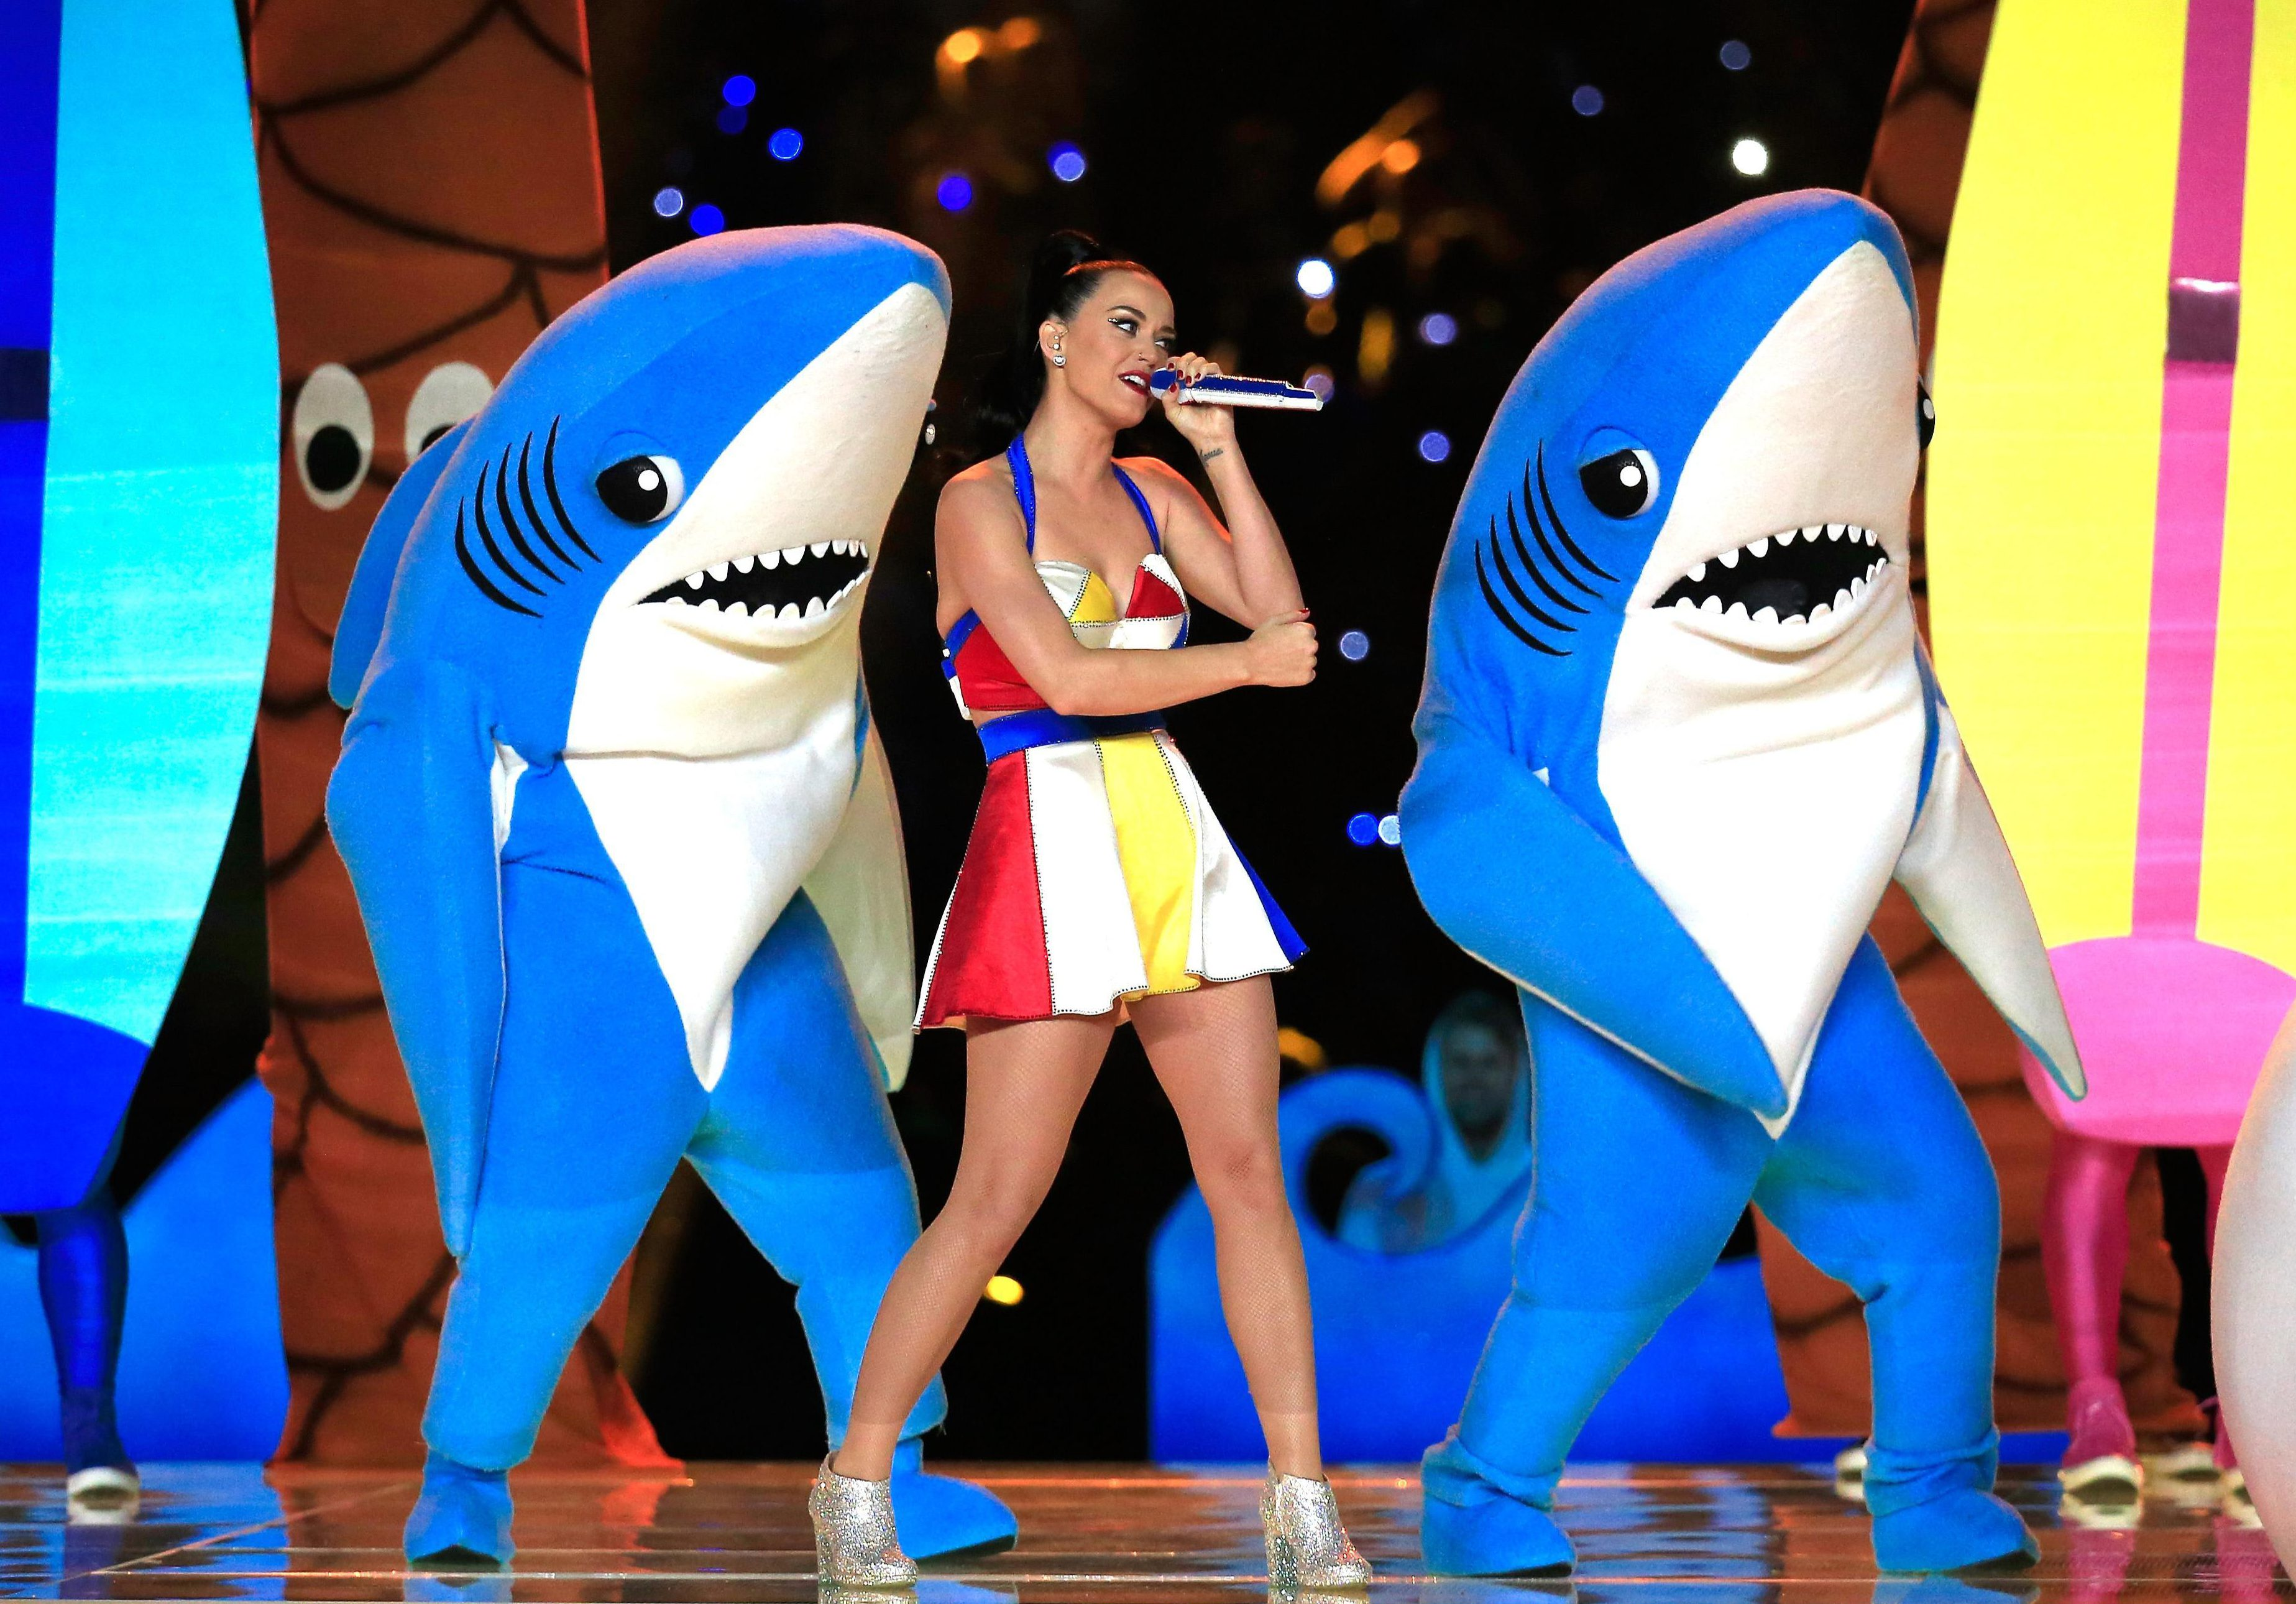 One of the back-up dancing sharks stole the show from Katy Perry at Super Bowl 49 in Arizona